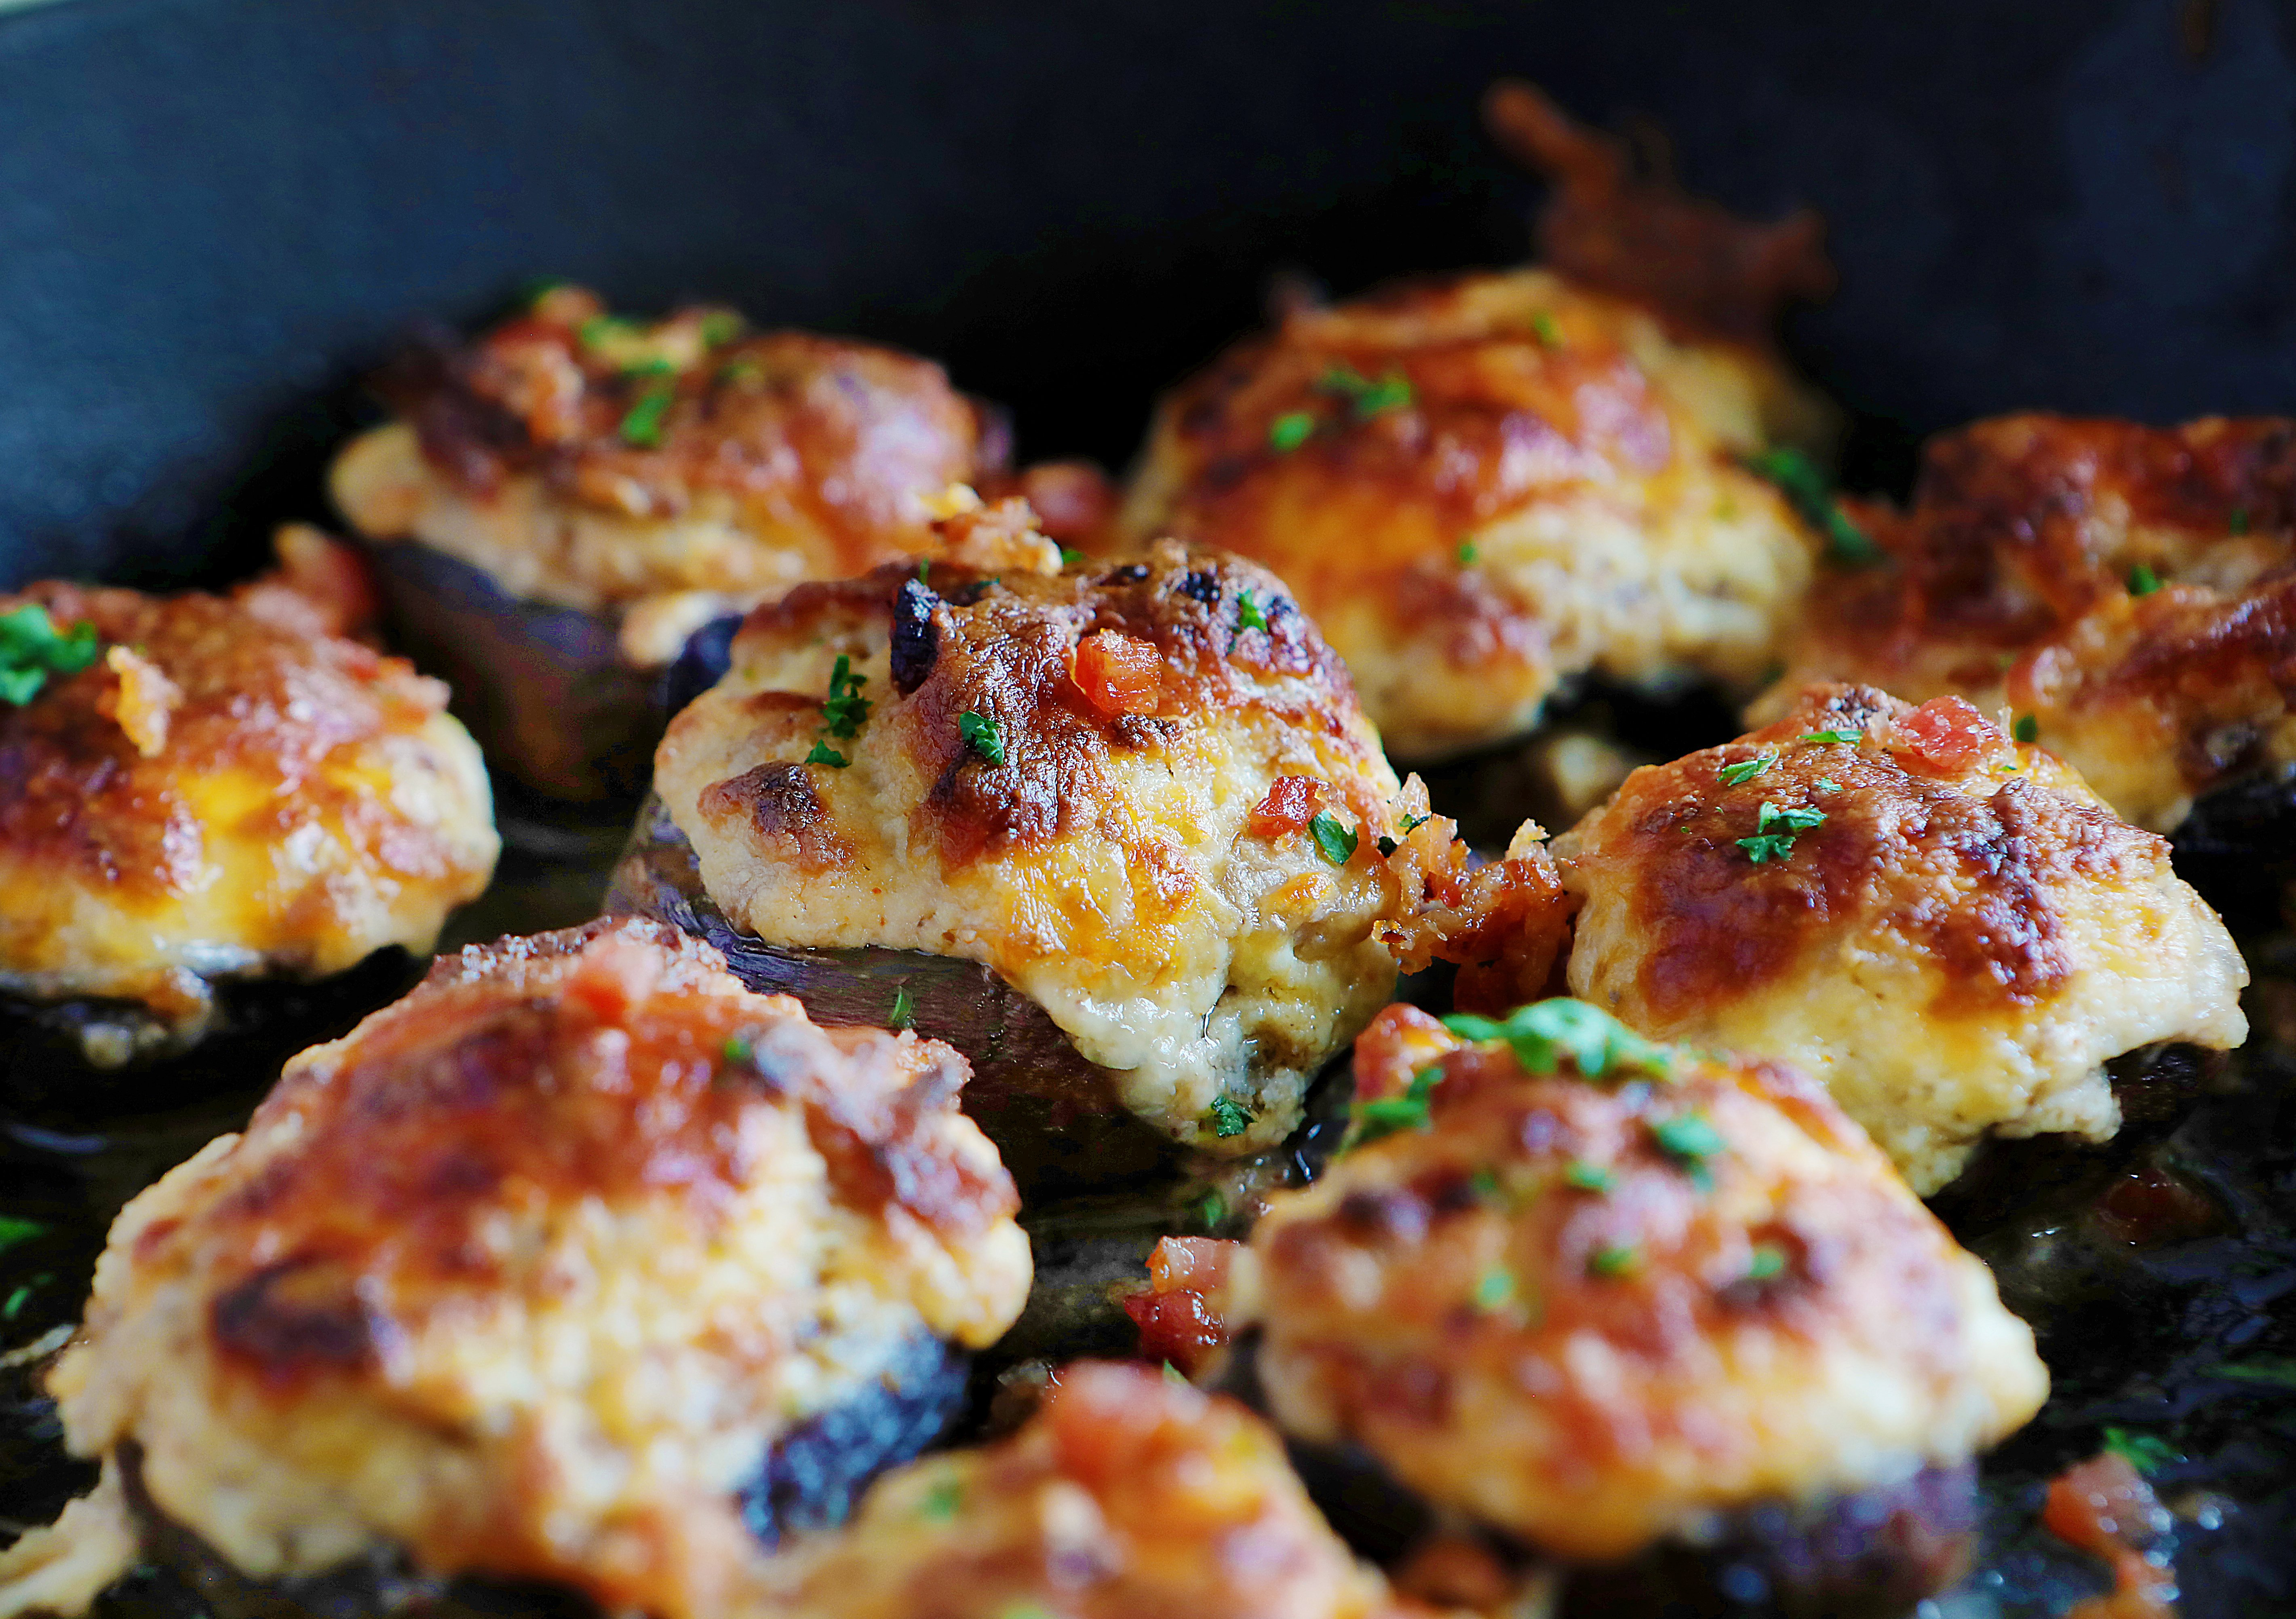 How to Make Bacon Stuffed Mushroom Appetizer